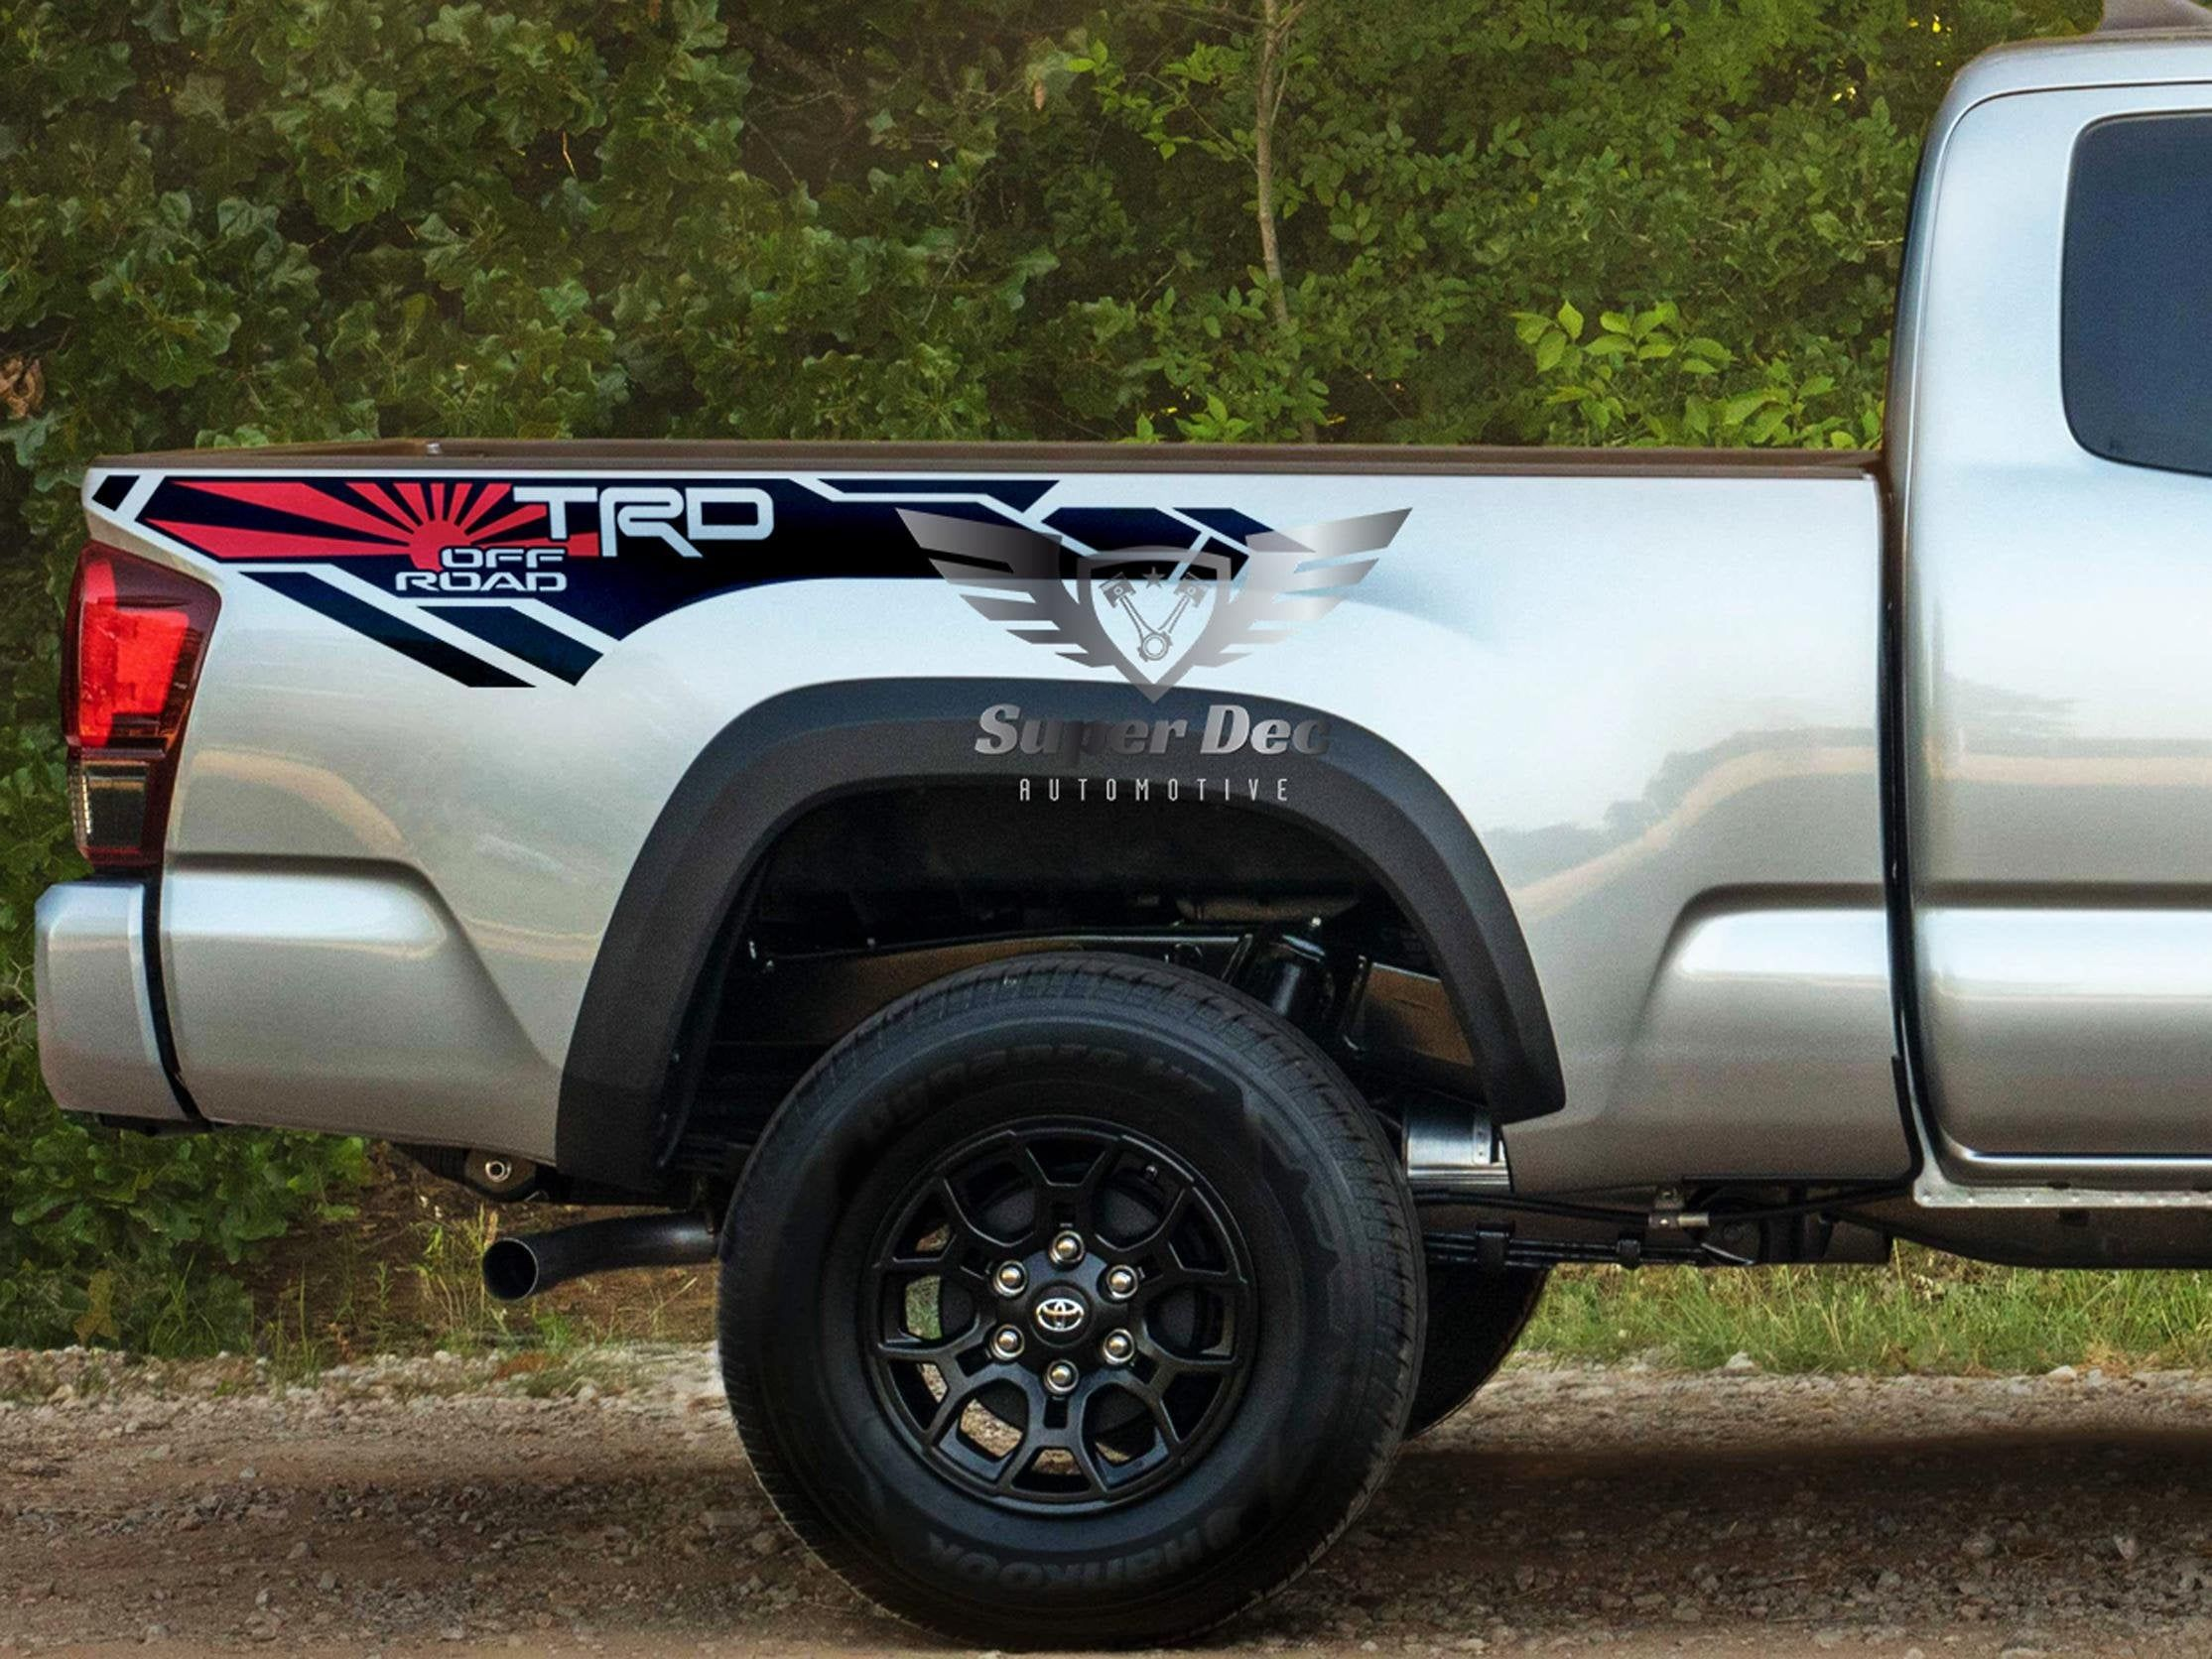 Jdm Flag Trd 4x4 Pro Sport Off Road Side Vinyl Stickers Decal Fit